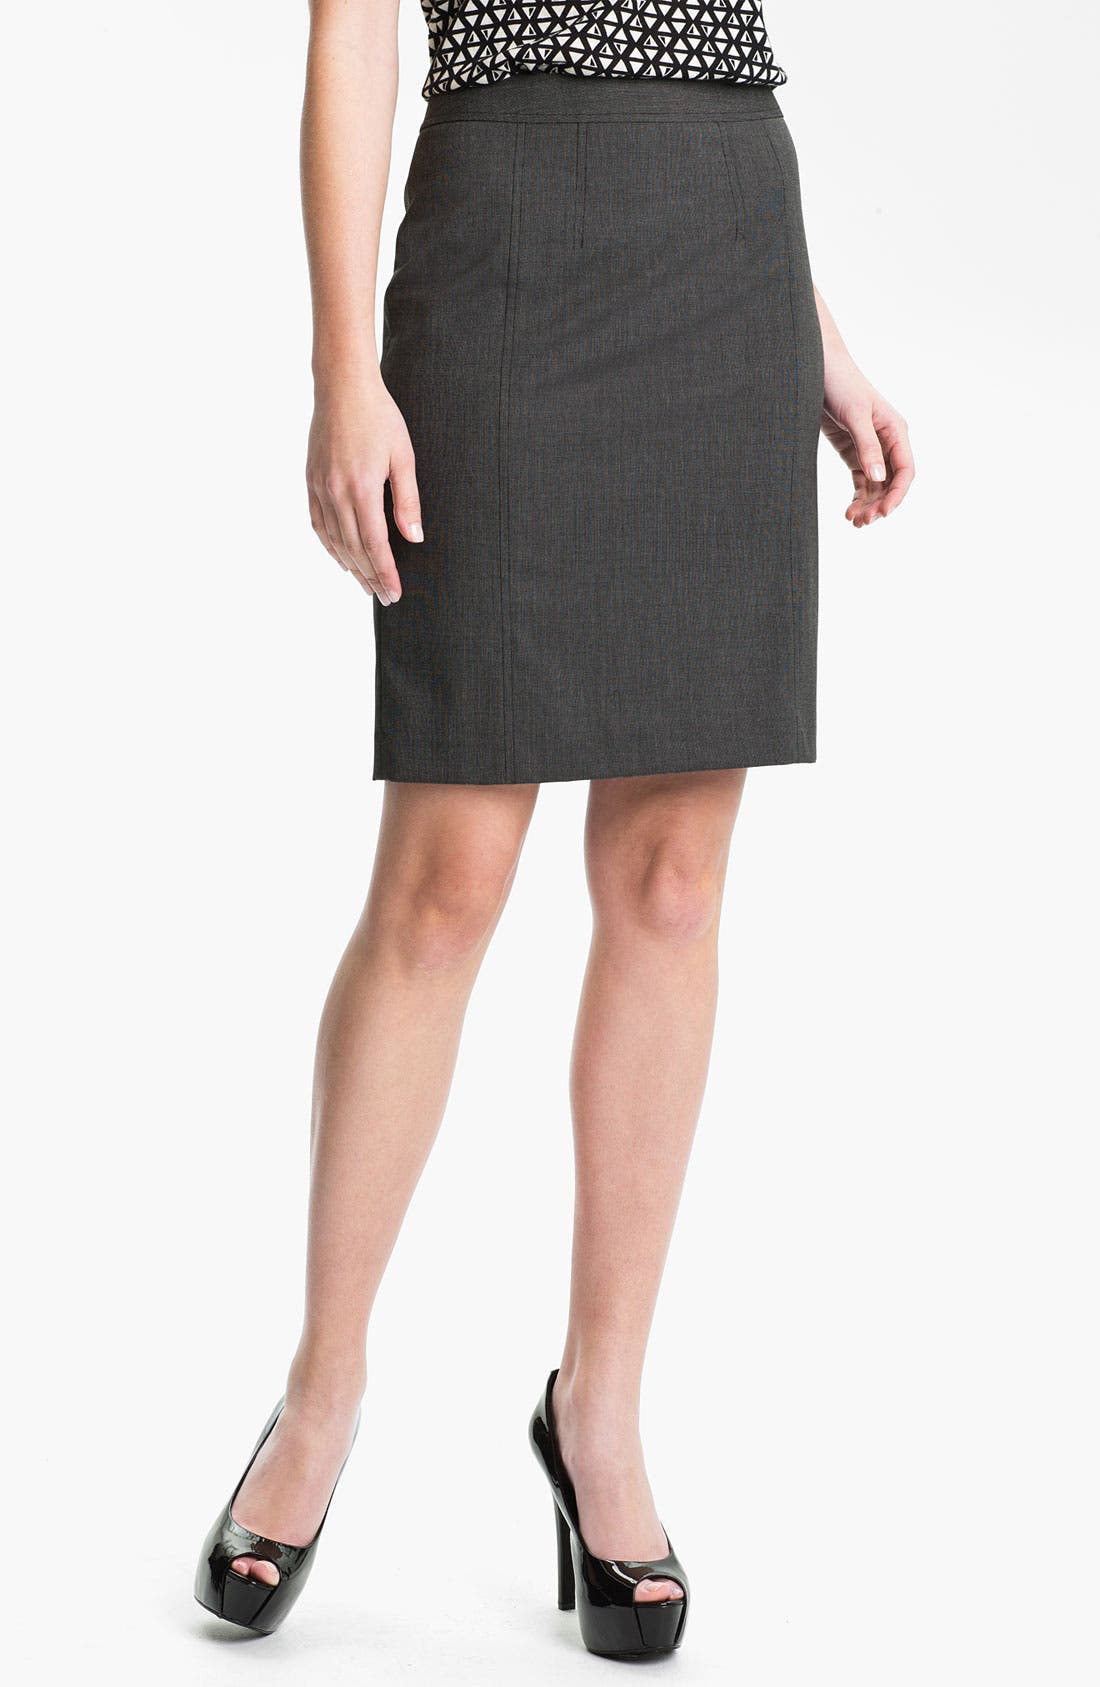 Alternate Image 1 Selected - Halogen® 'End on End' Skirt (Petite)